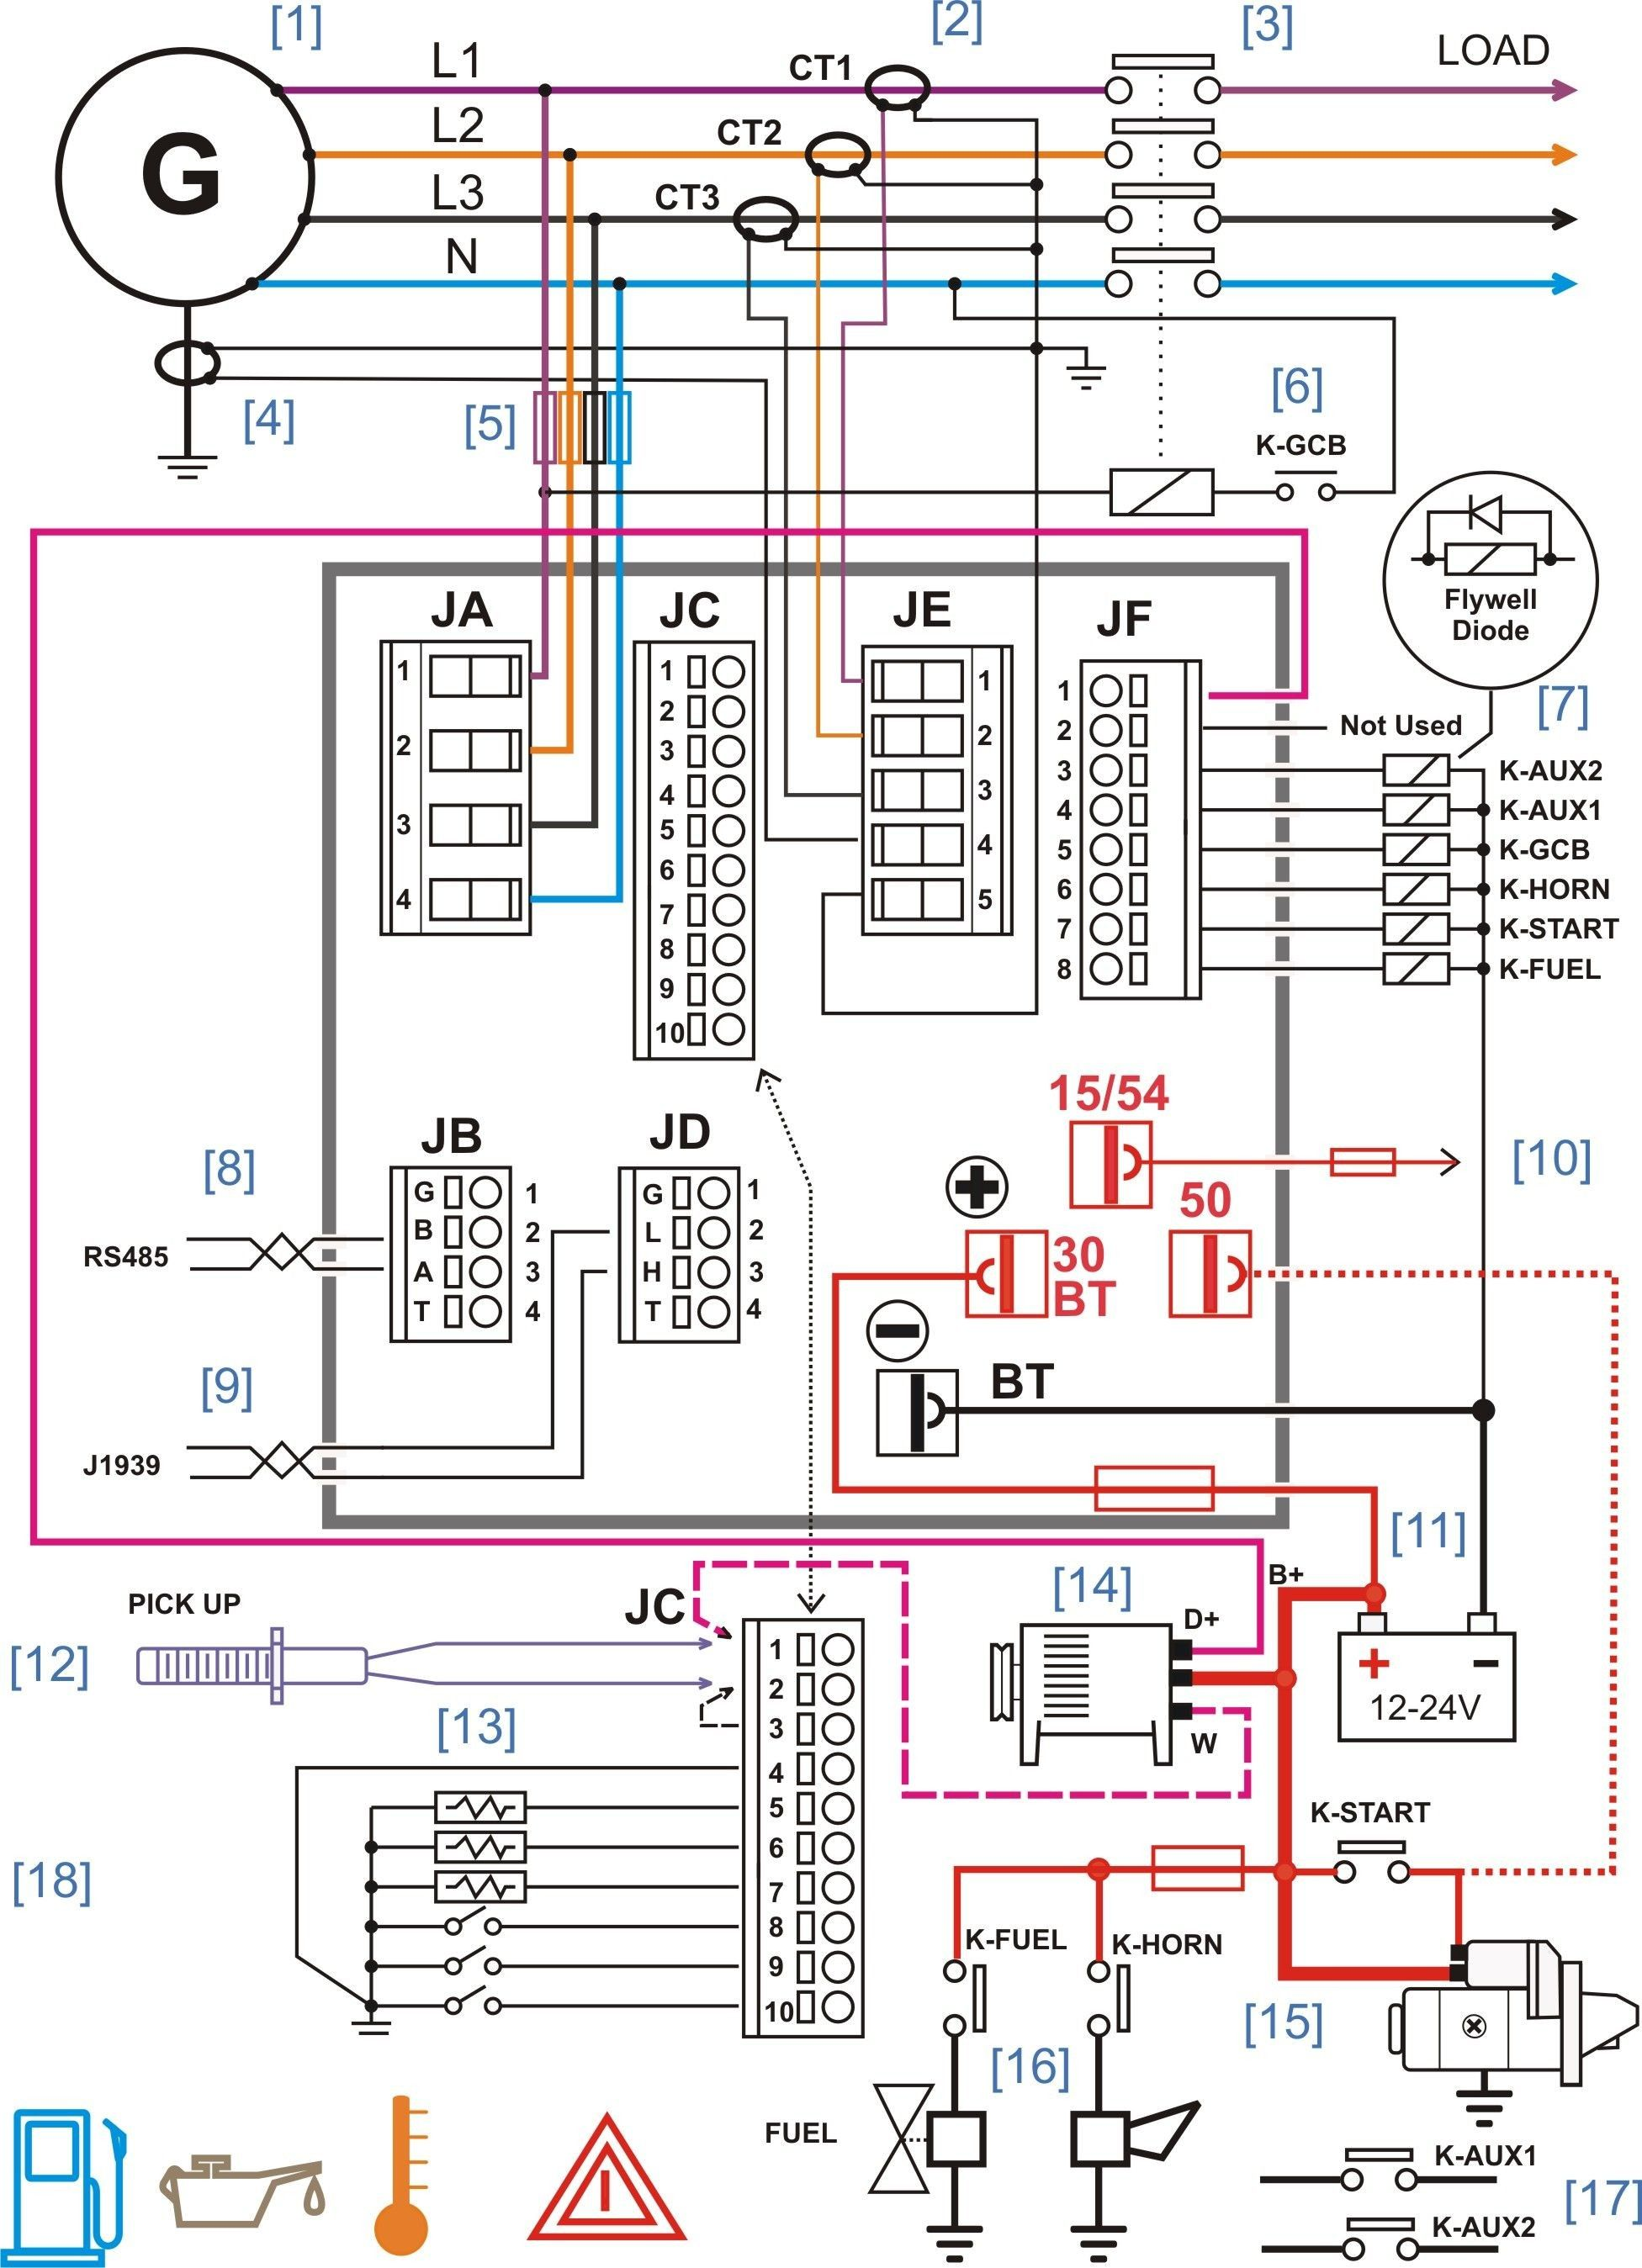 Generator Wiring Diagram And Electrical Schematics Pdf Download In 2020 Electrical Circuit Diagram Electrical Diagram Electrical Wiring Diagram